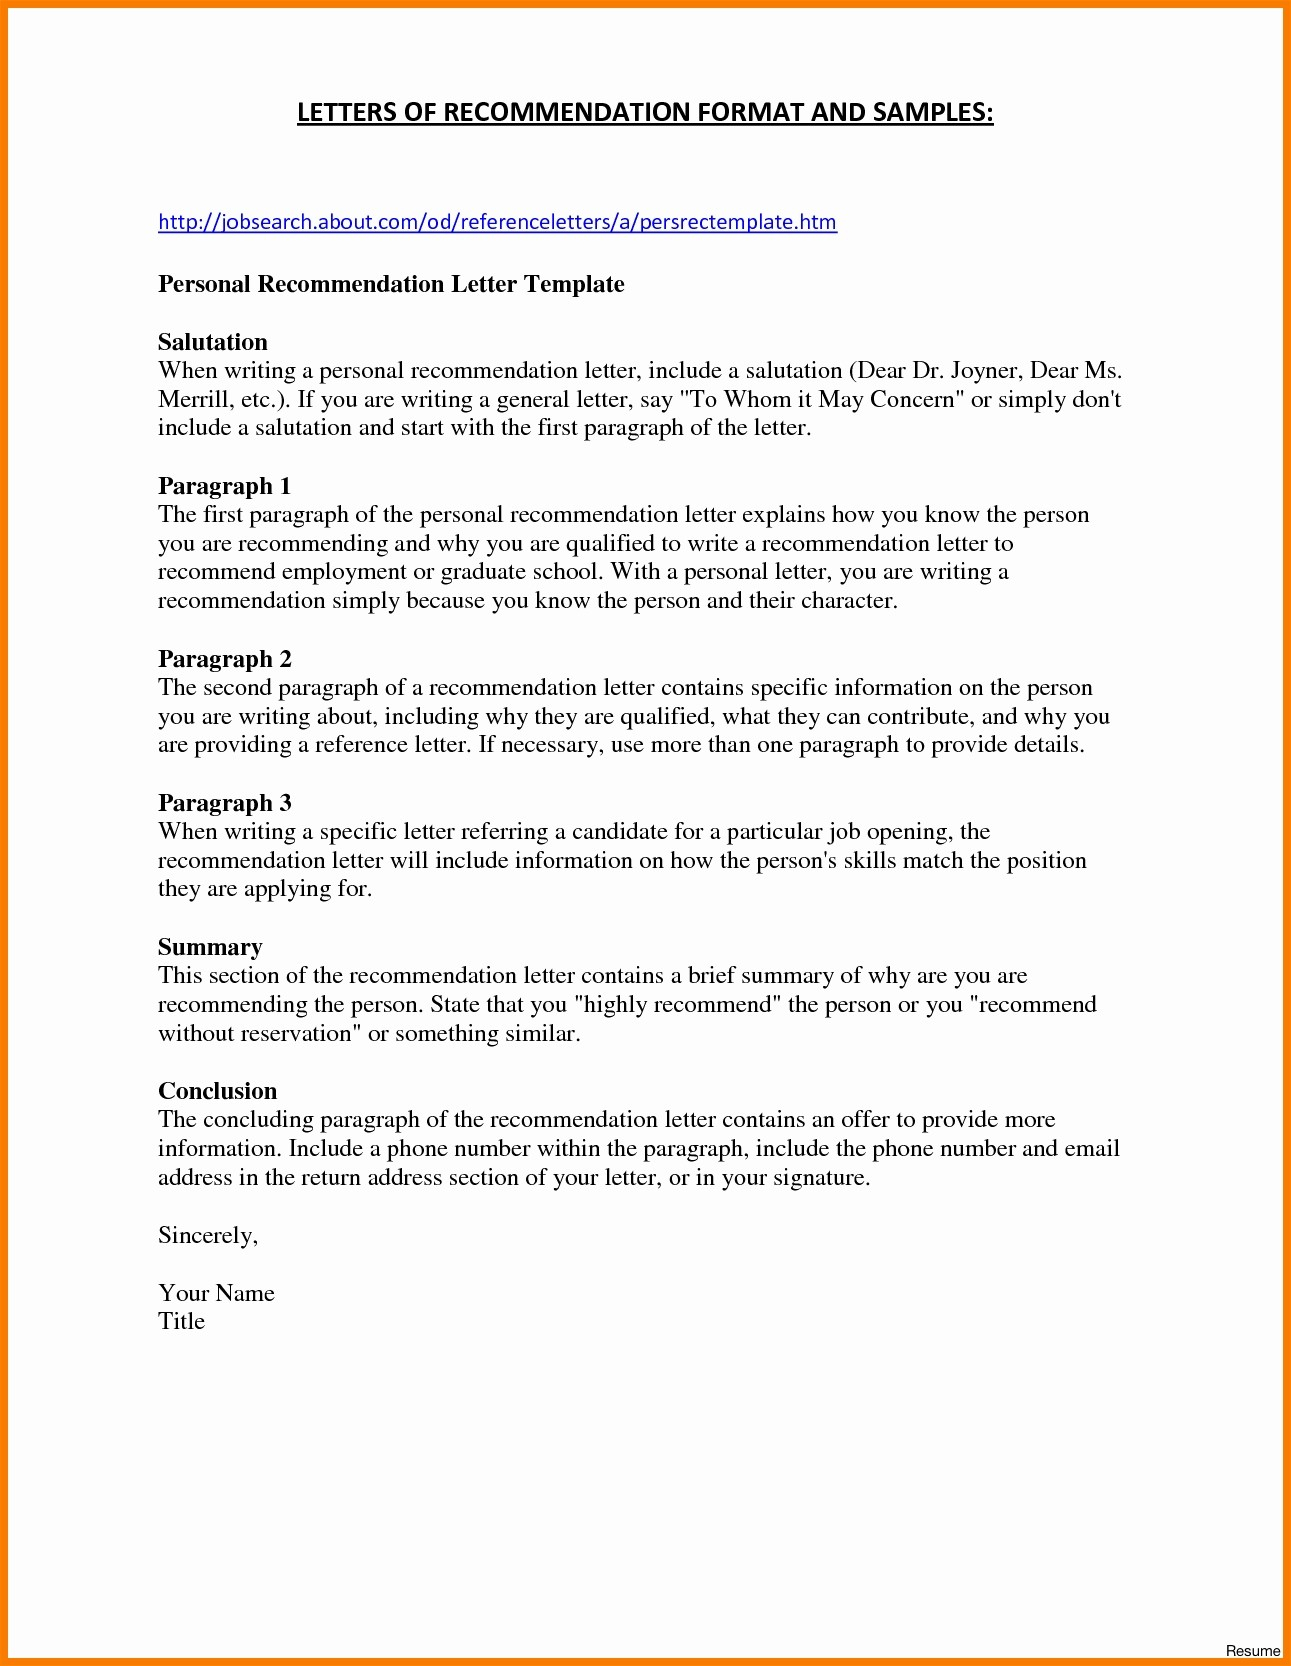 Writing A Proposal Letter Template - Writing A Proposal Letter for A Job Save Cover Letter for Bid